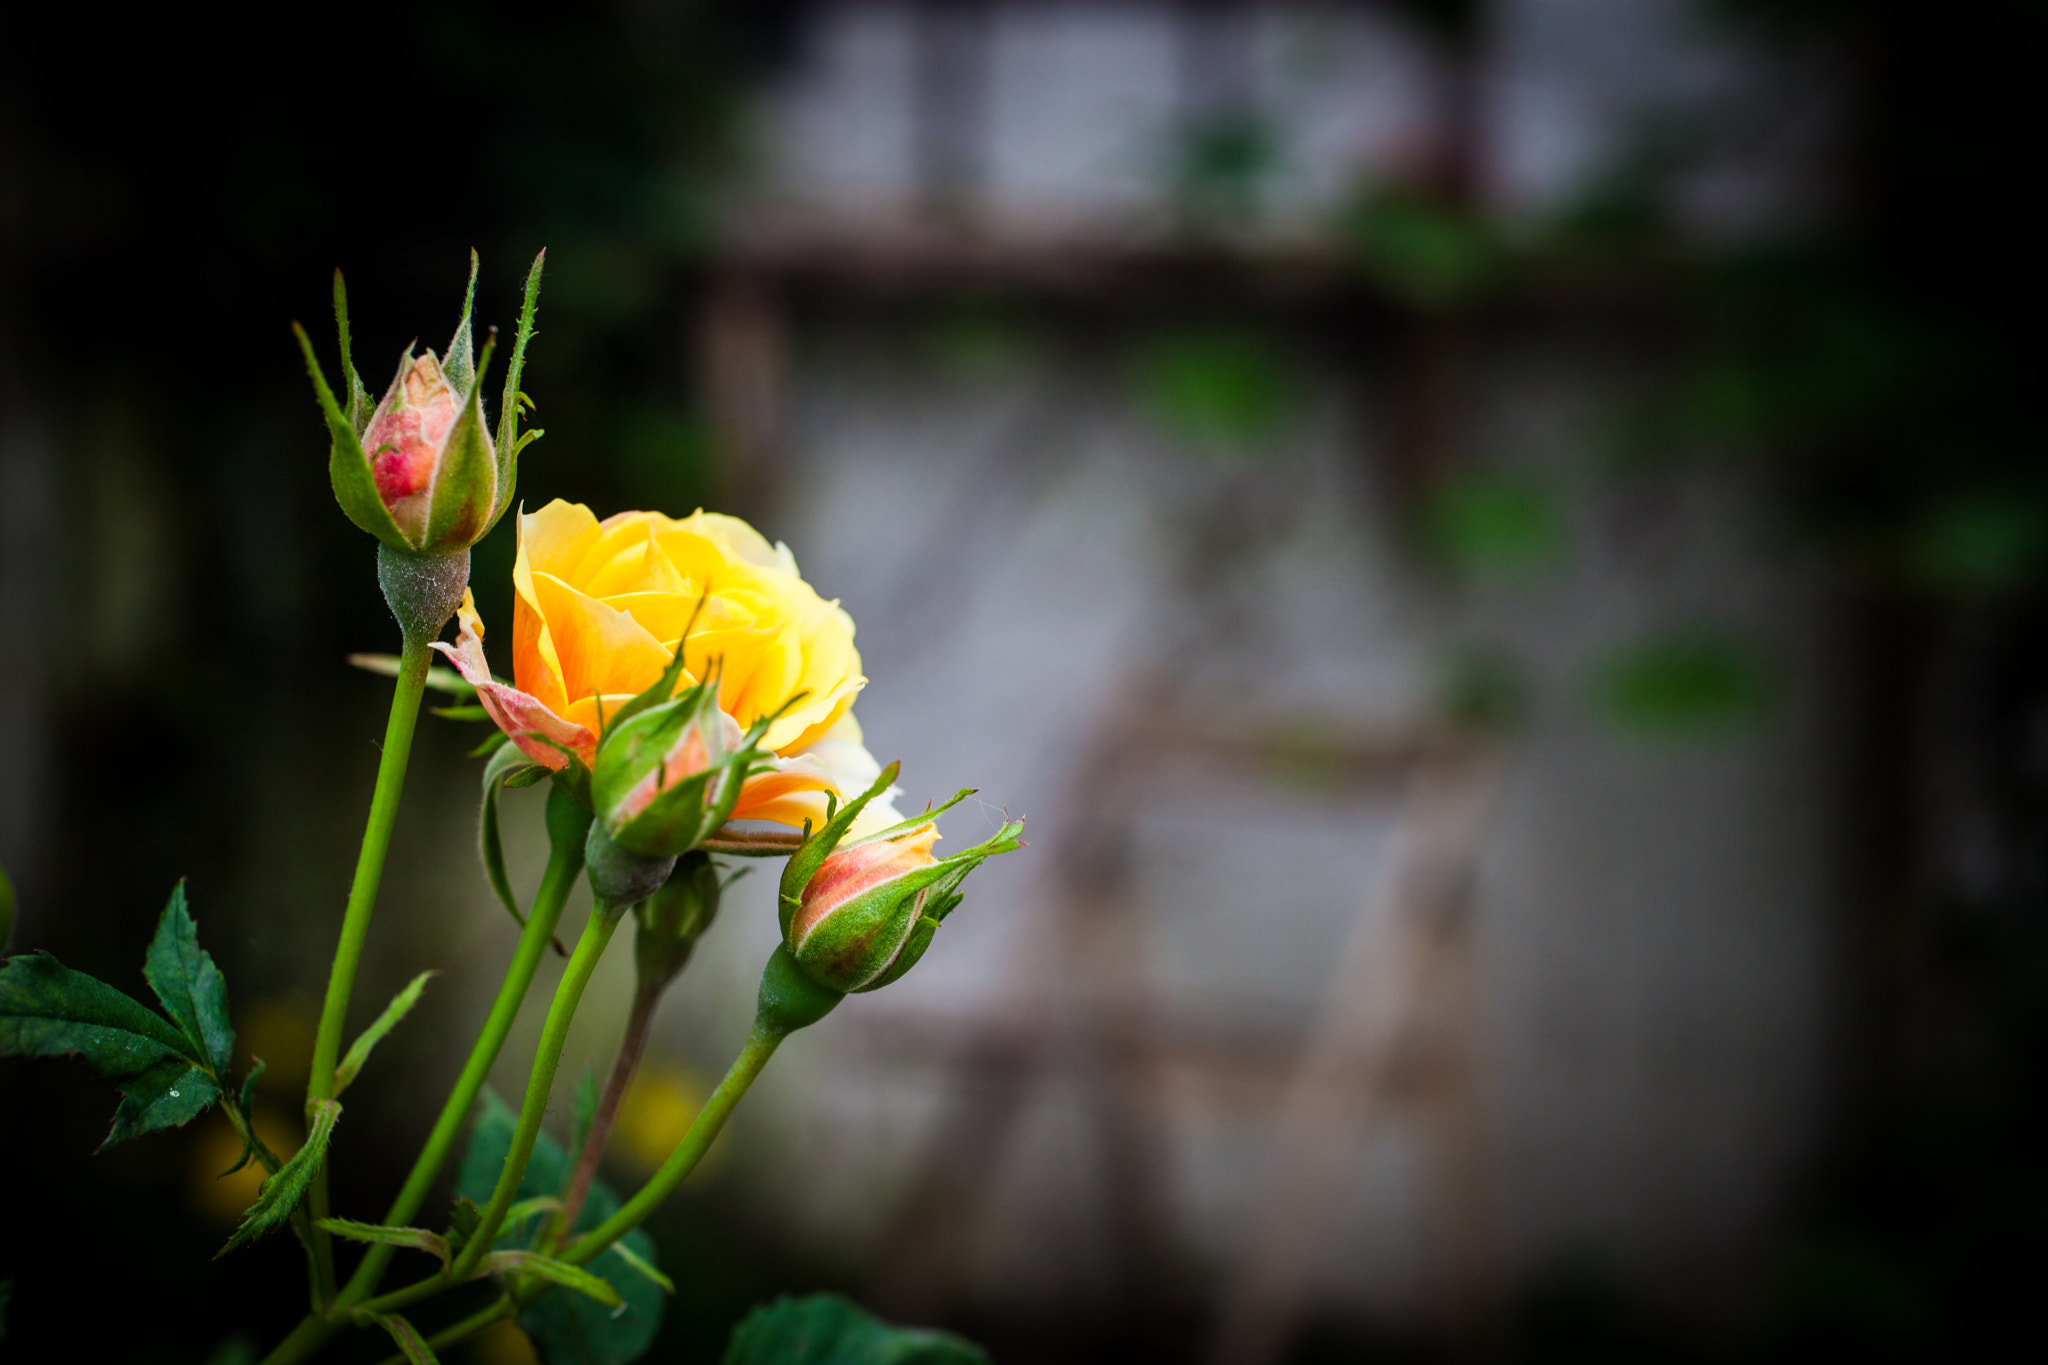 Photograph Yellow rose for friends by Håkan Dahlström on 500px